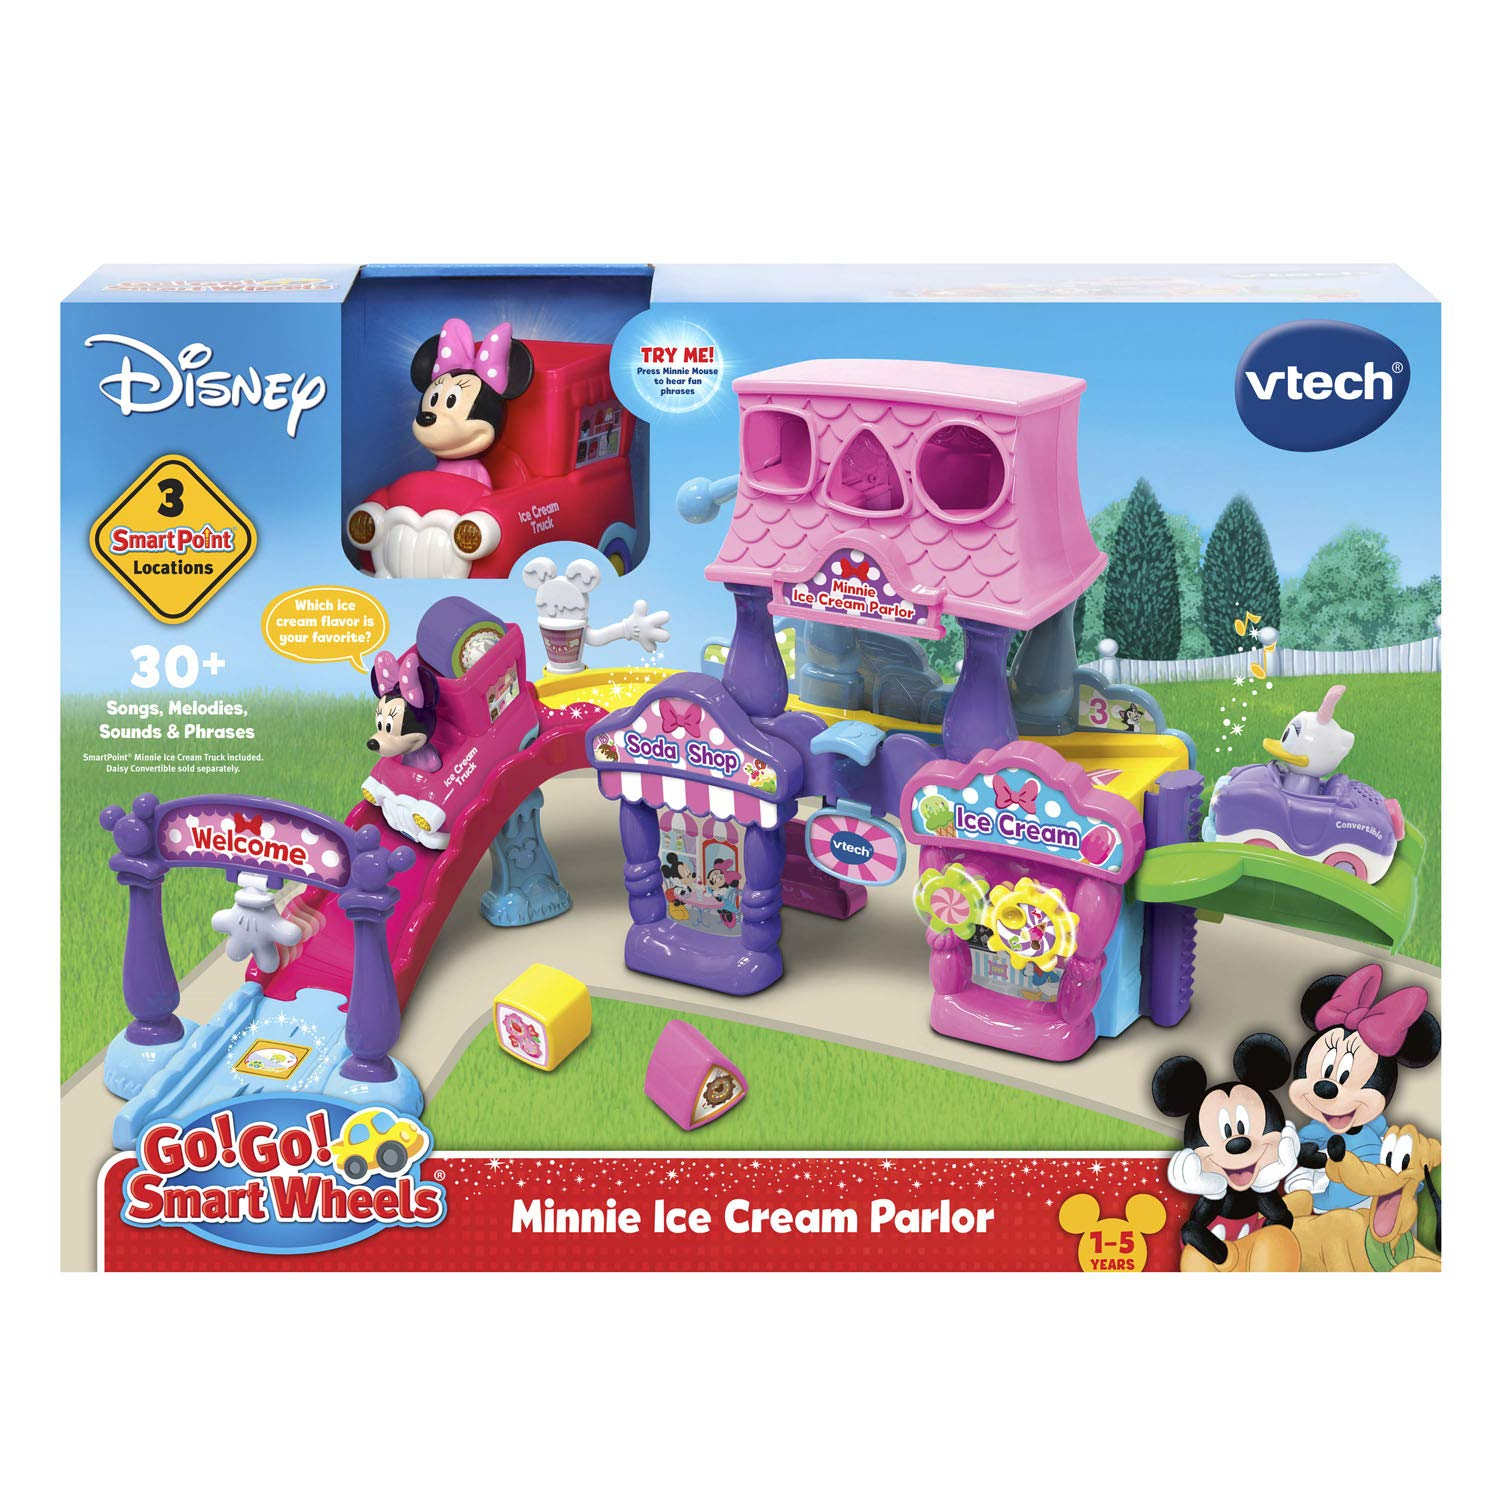 VTech Go! Go! Smart Wheels Minnie Mouse Ice Cream Parlor by VTech (Image #5)